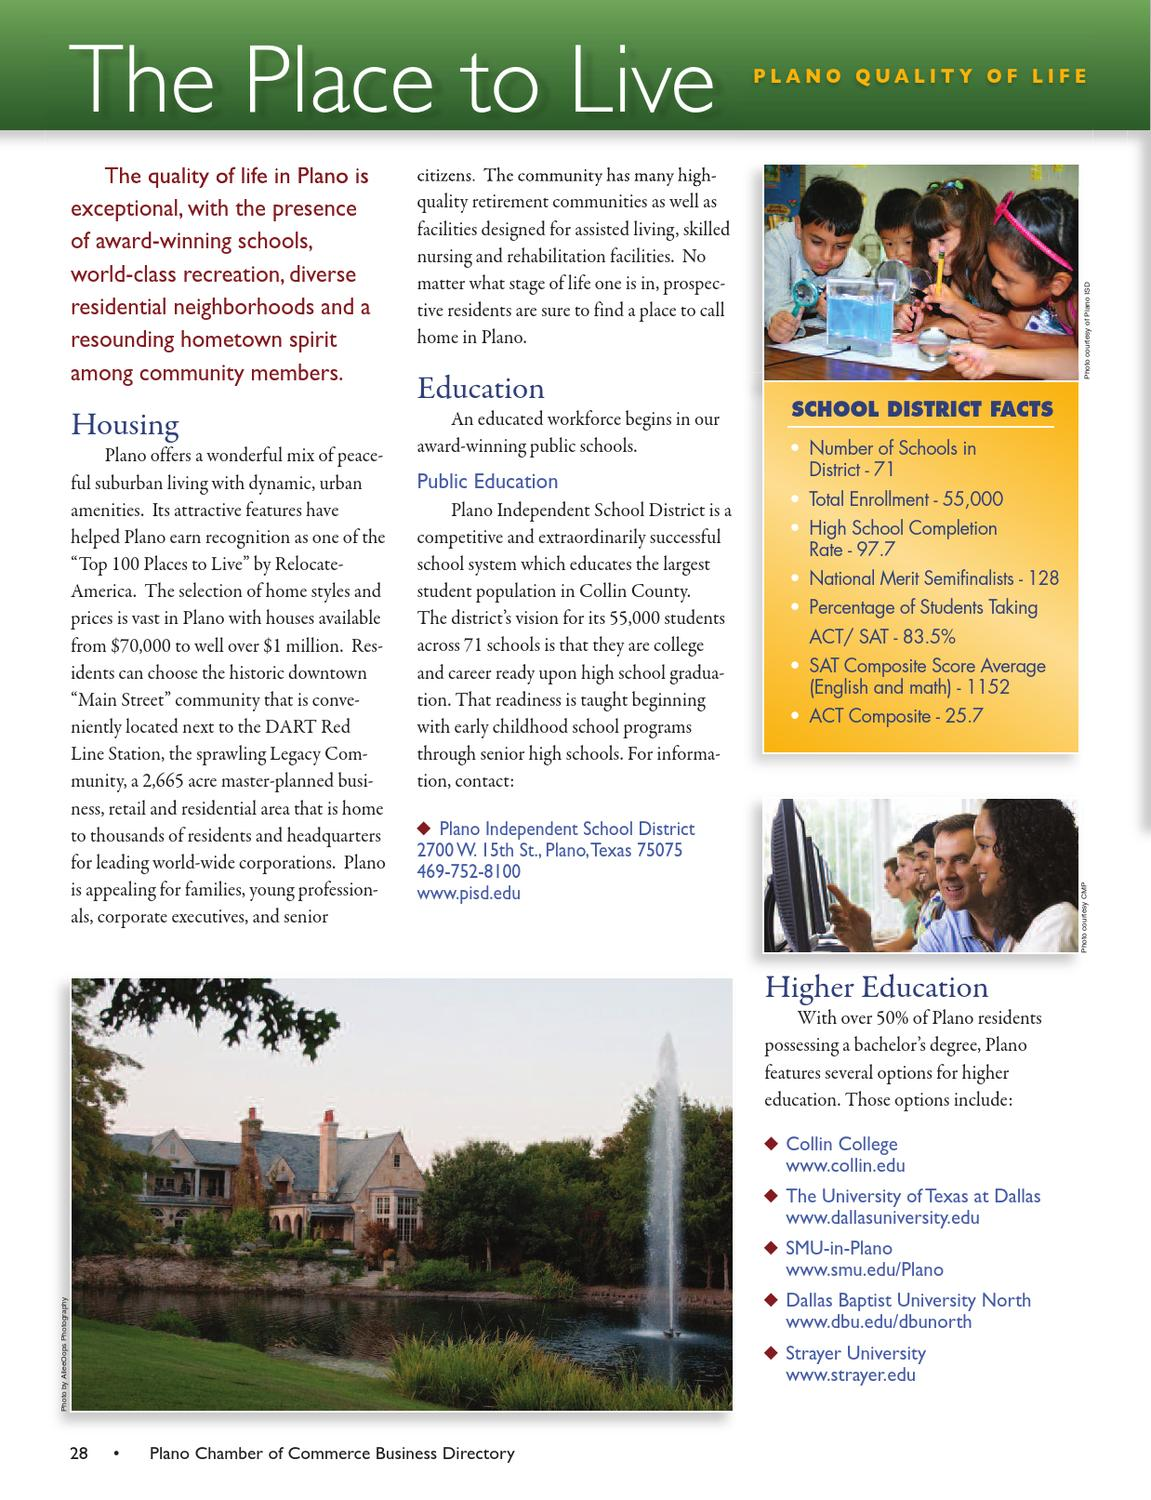 Plano Chamber of Commerce Community Guide & Business